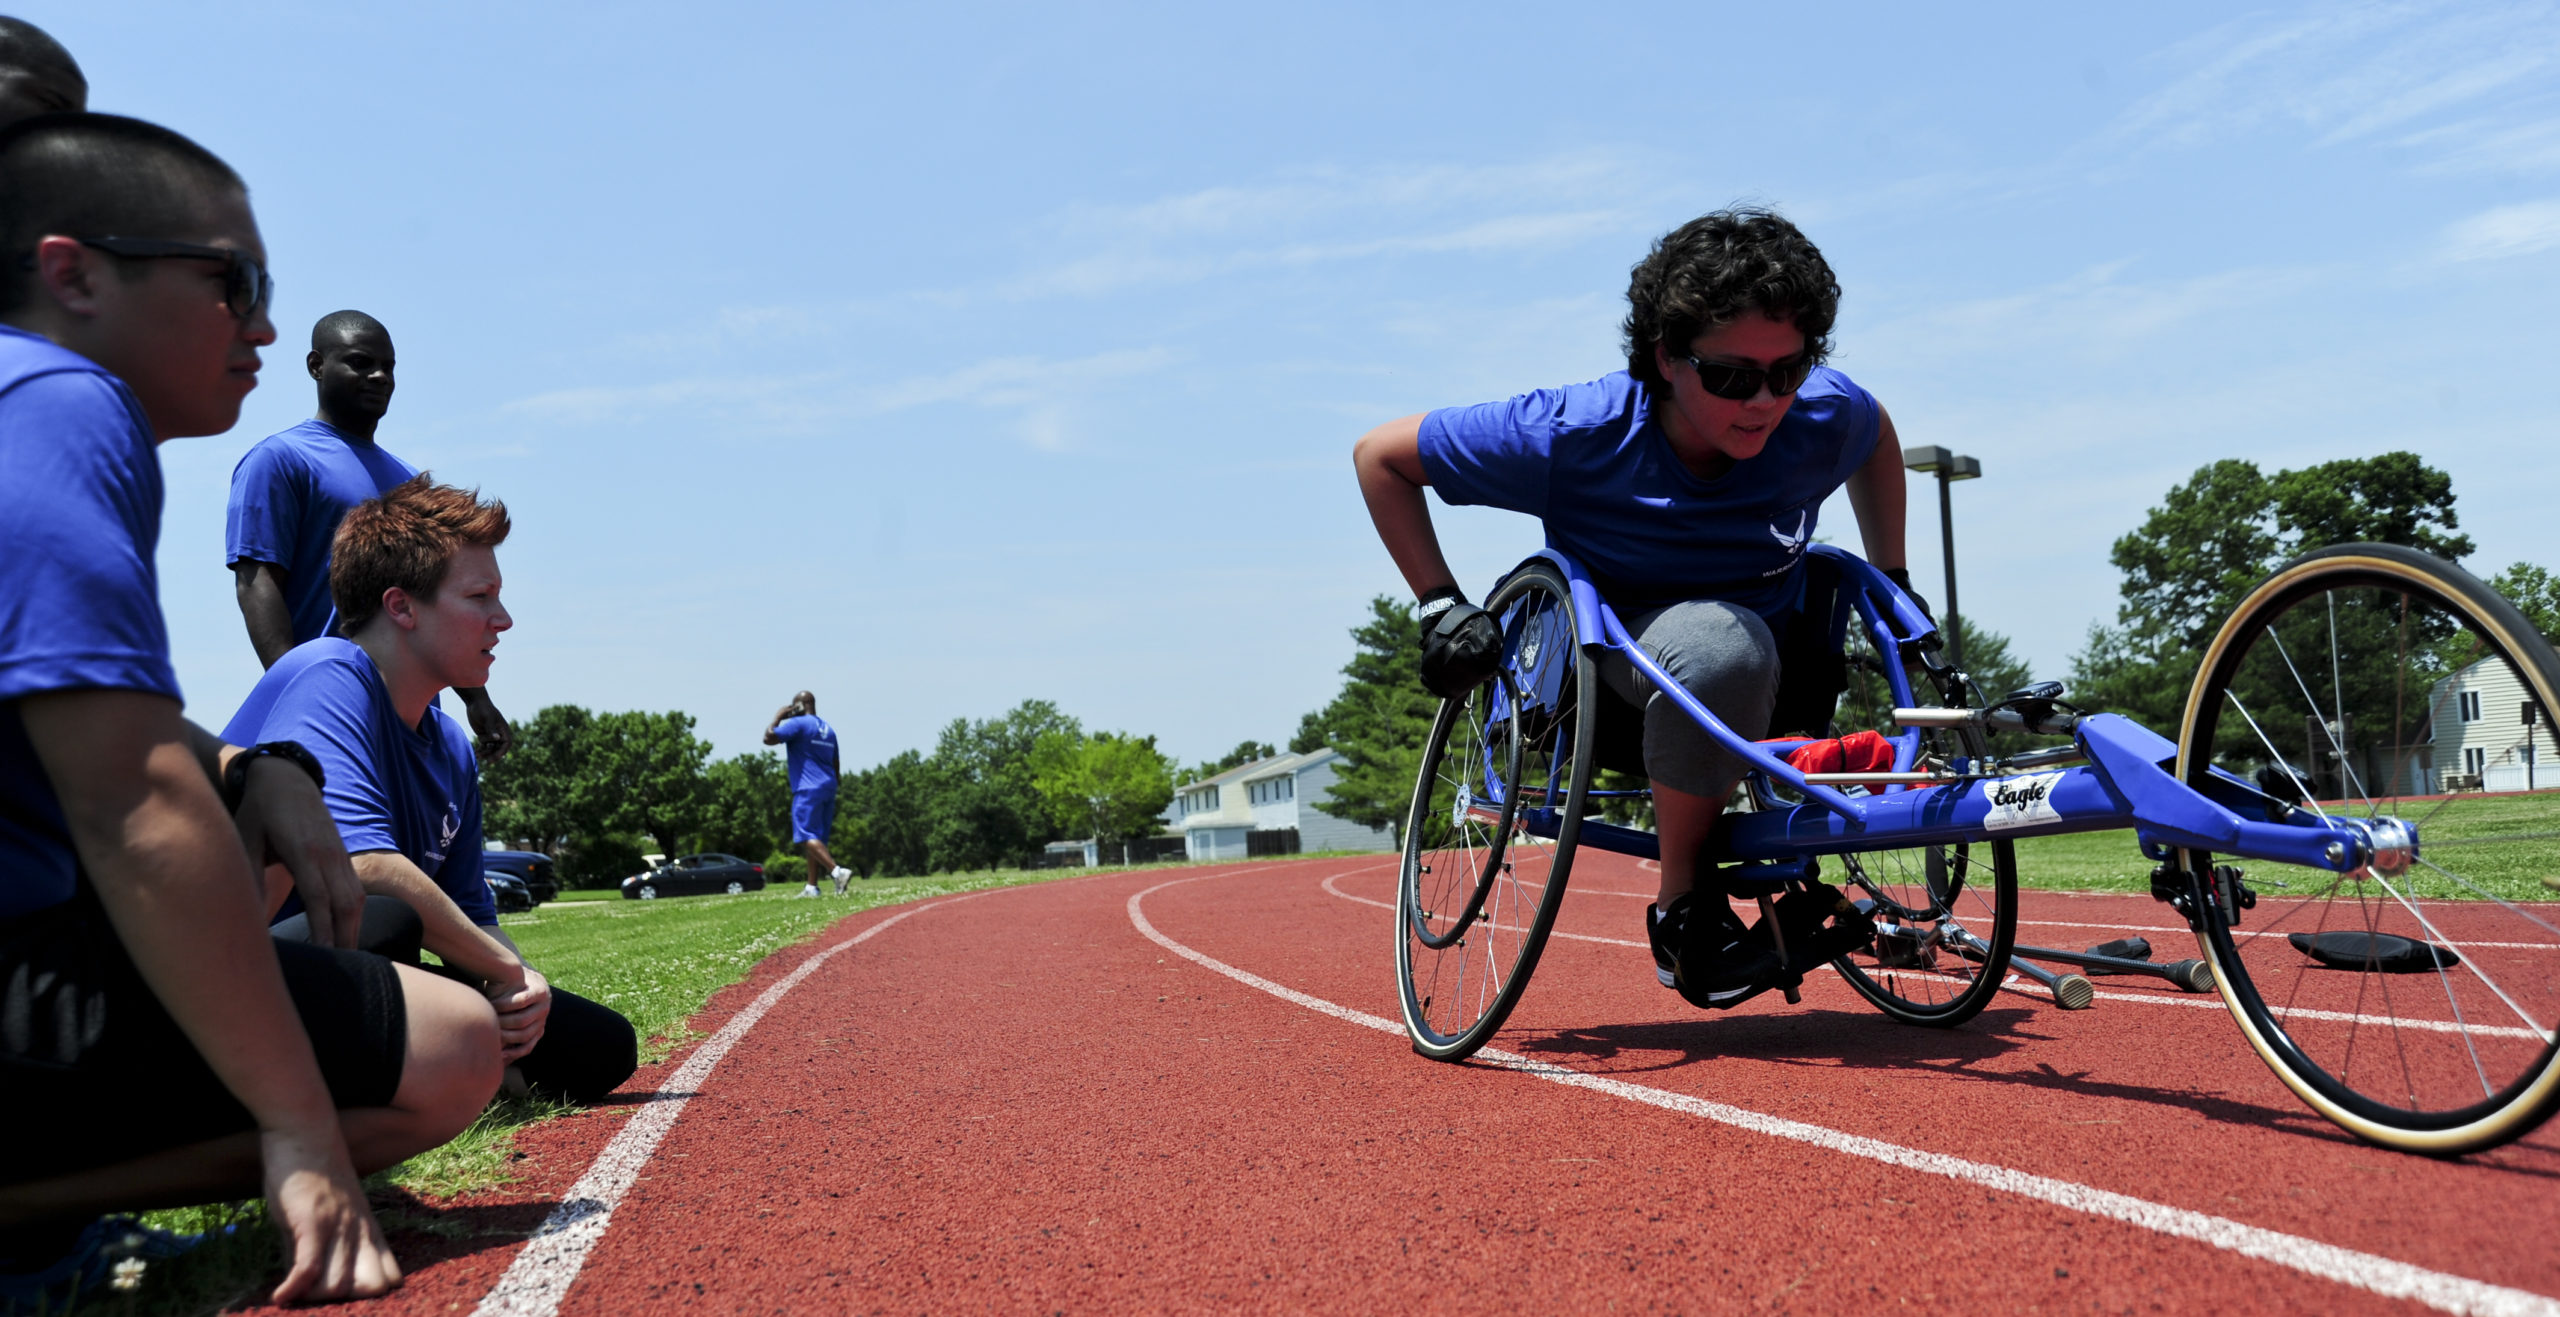 How to Try Adaptive Sports for Free